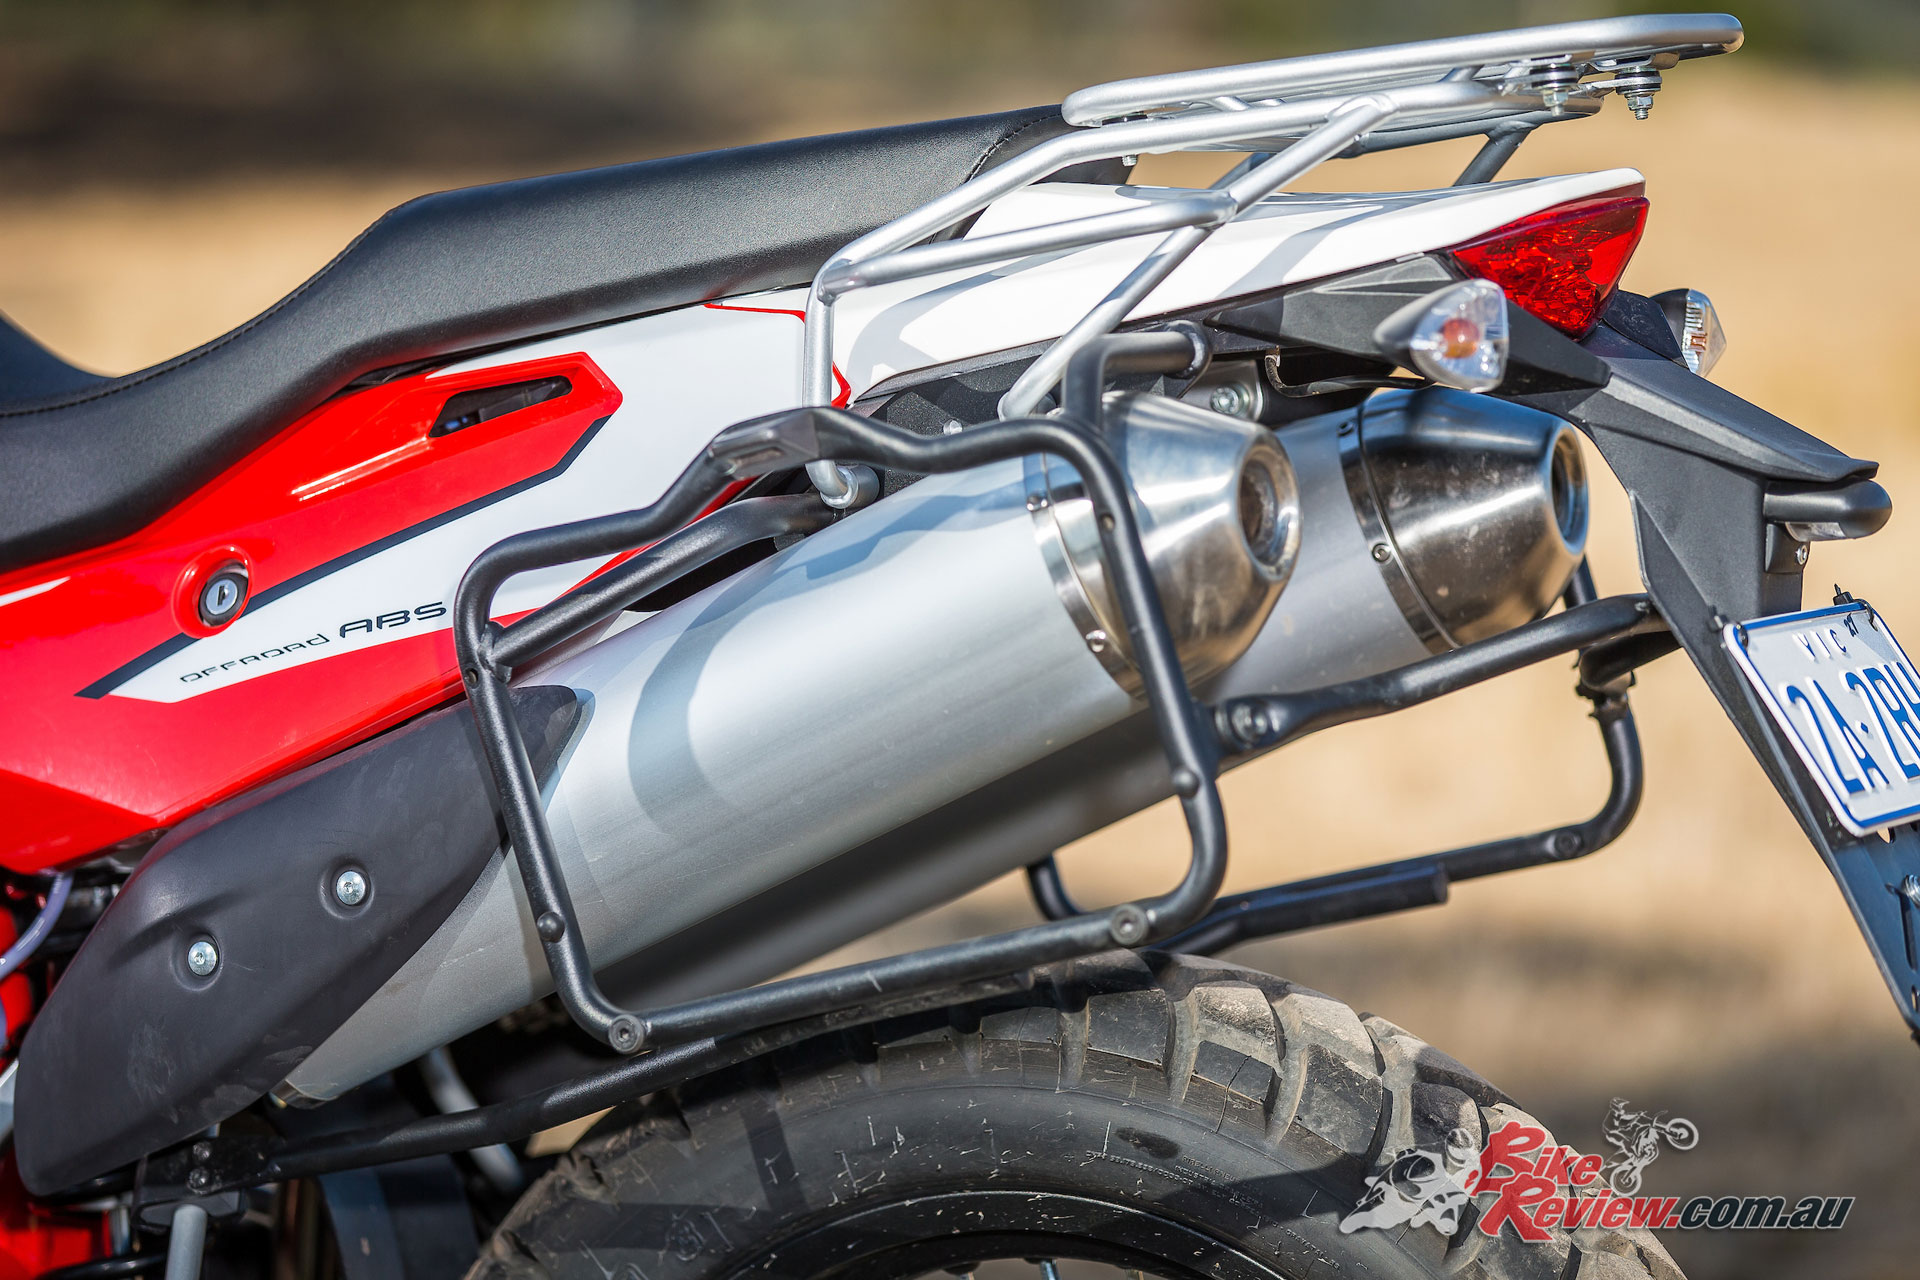 For 2018 the Superdual is fully Euro4 compliant, and includes sporty undertail exhausts